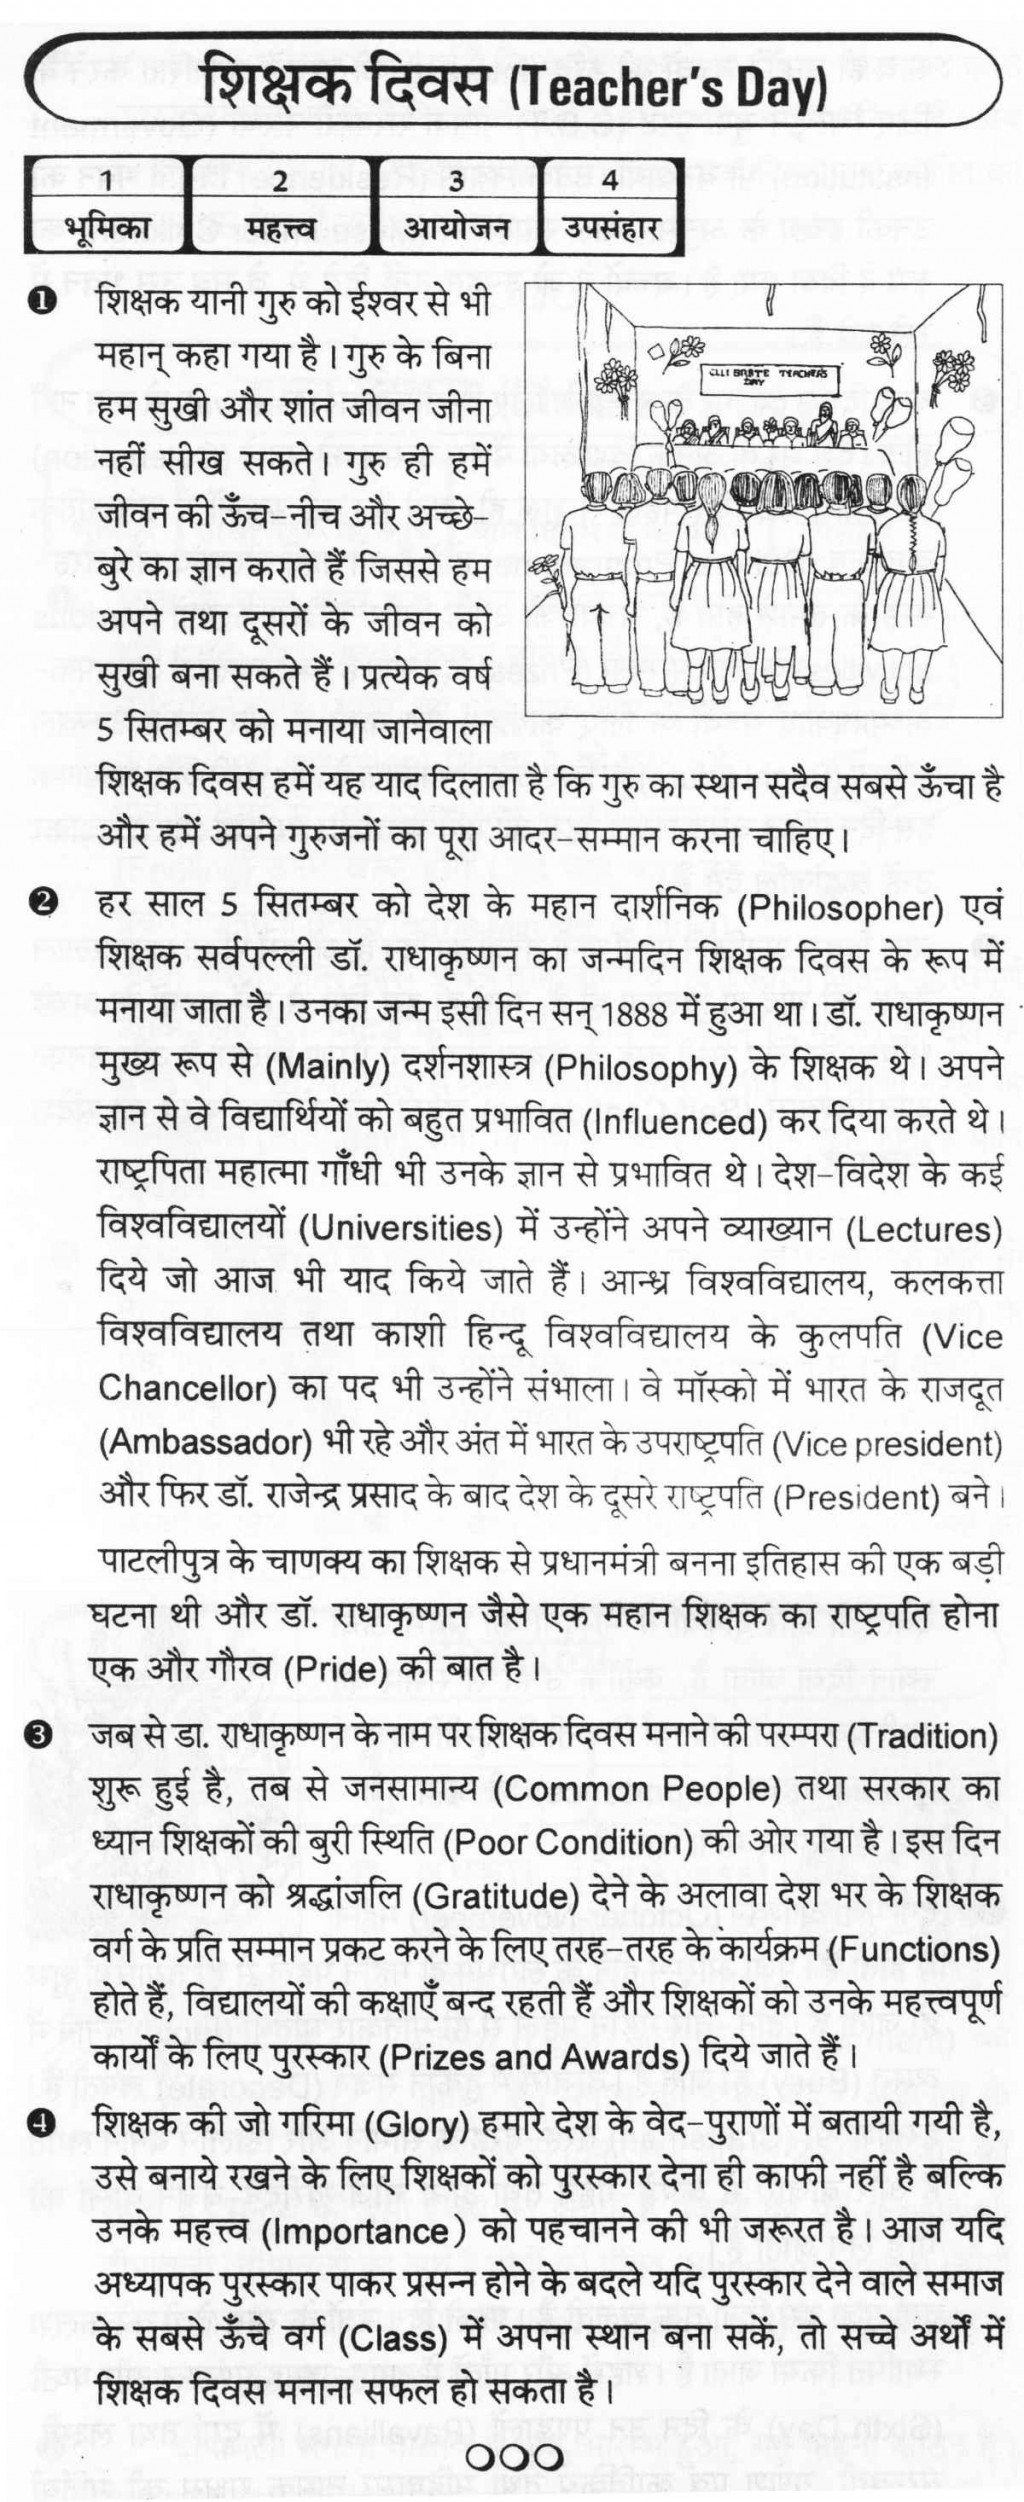 017 Qualities Of Good Teacher Essay Thumb Characteristics Pdf Three Language In Urdu Free Great Hindi Stupendous A Science Large